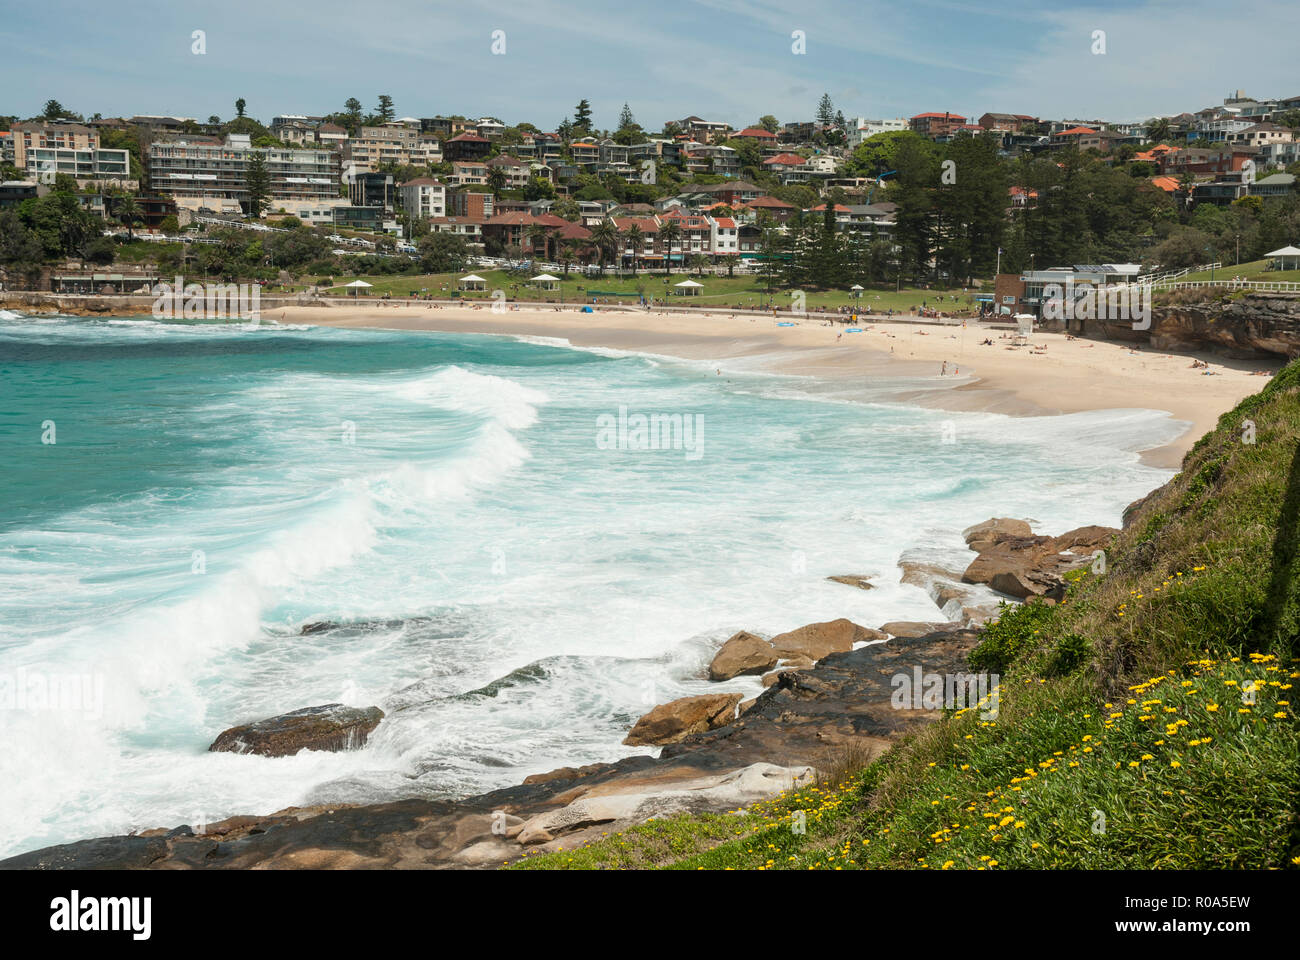 View along the foreshore of Bronte Beach, Sydney, Australia, with spring flowers in the foreground and turquoise sea and golden sandy beach behind. - Stock Image